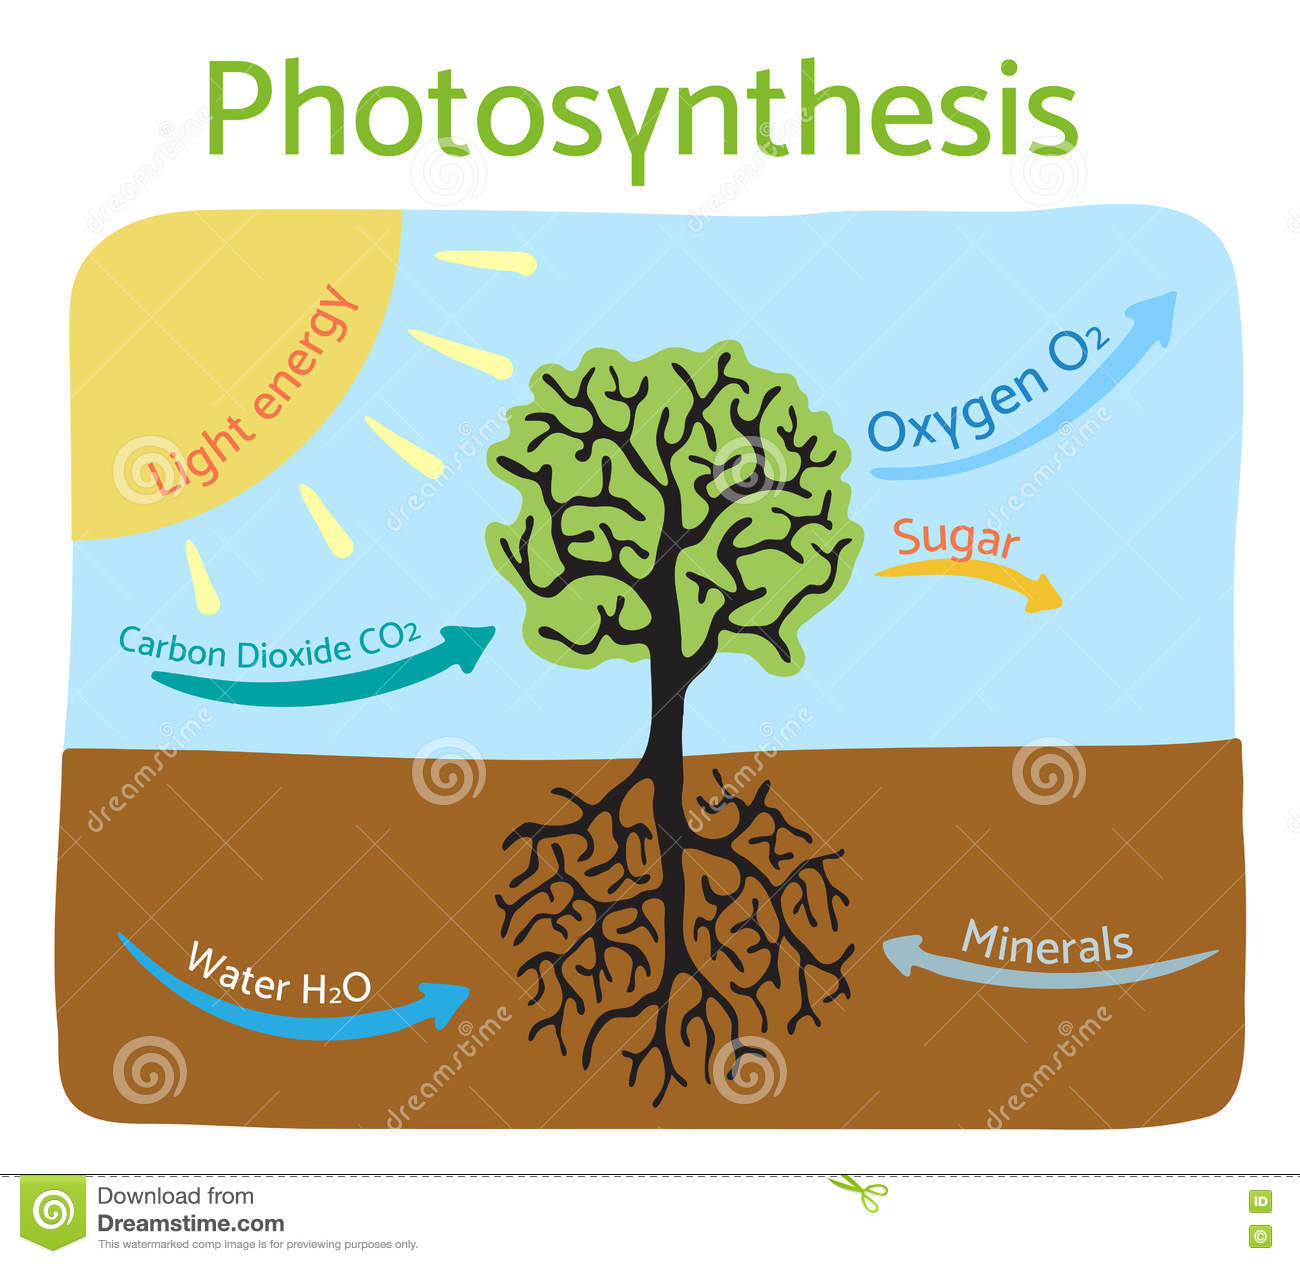 Photosynthesis process diagram schematic vector illustration stock download comp ccuart Choice Image